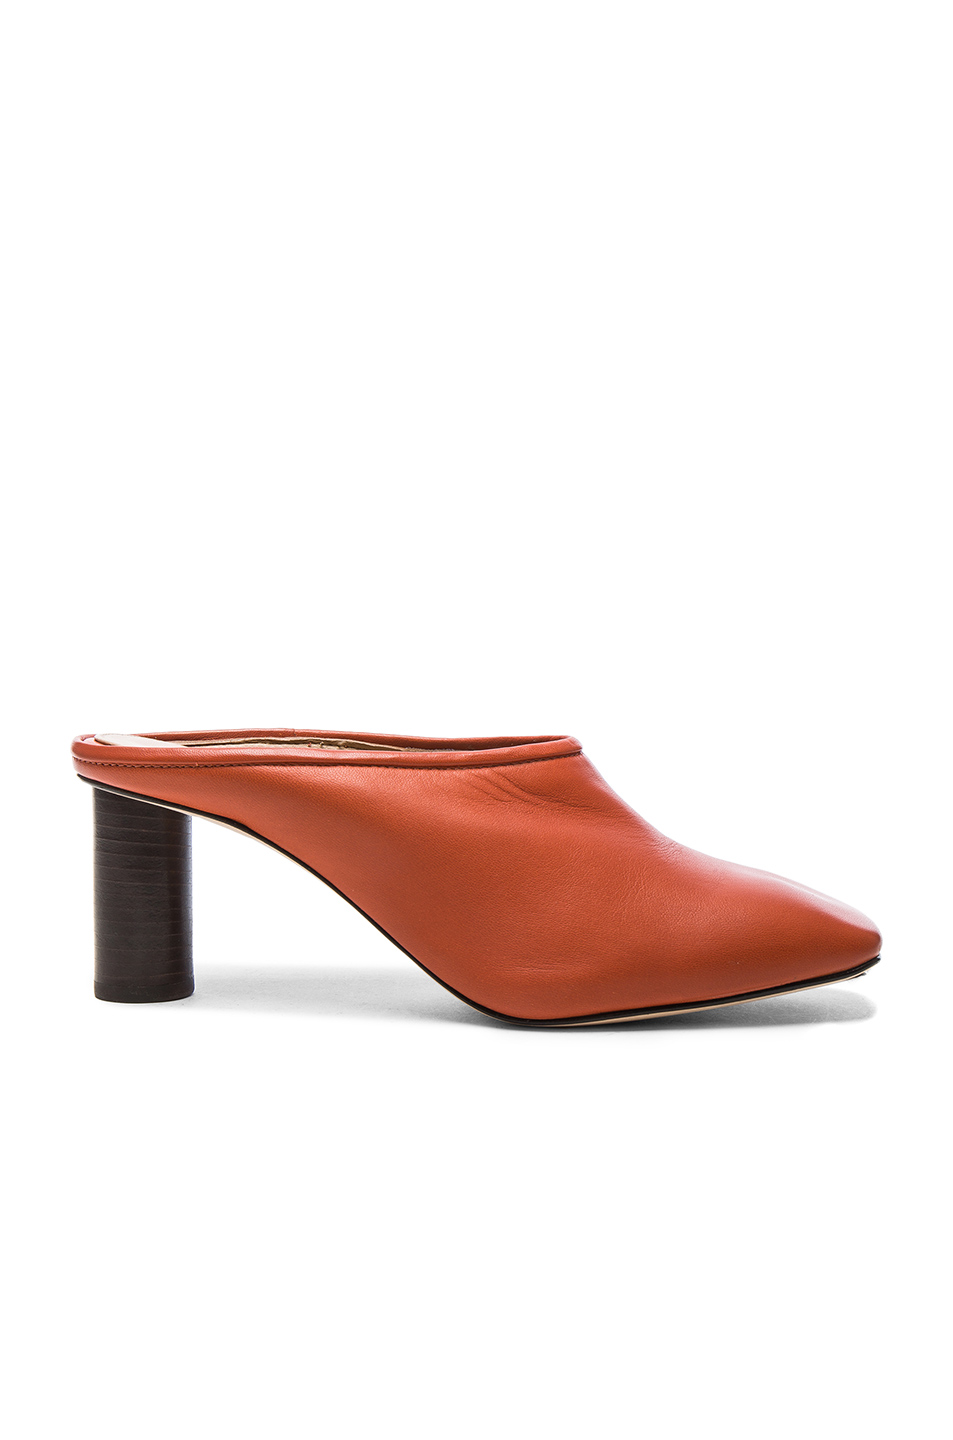 Helmut Lang Square Toe Leather Mules in Orange